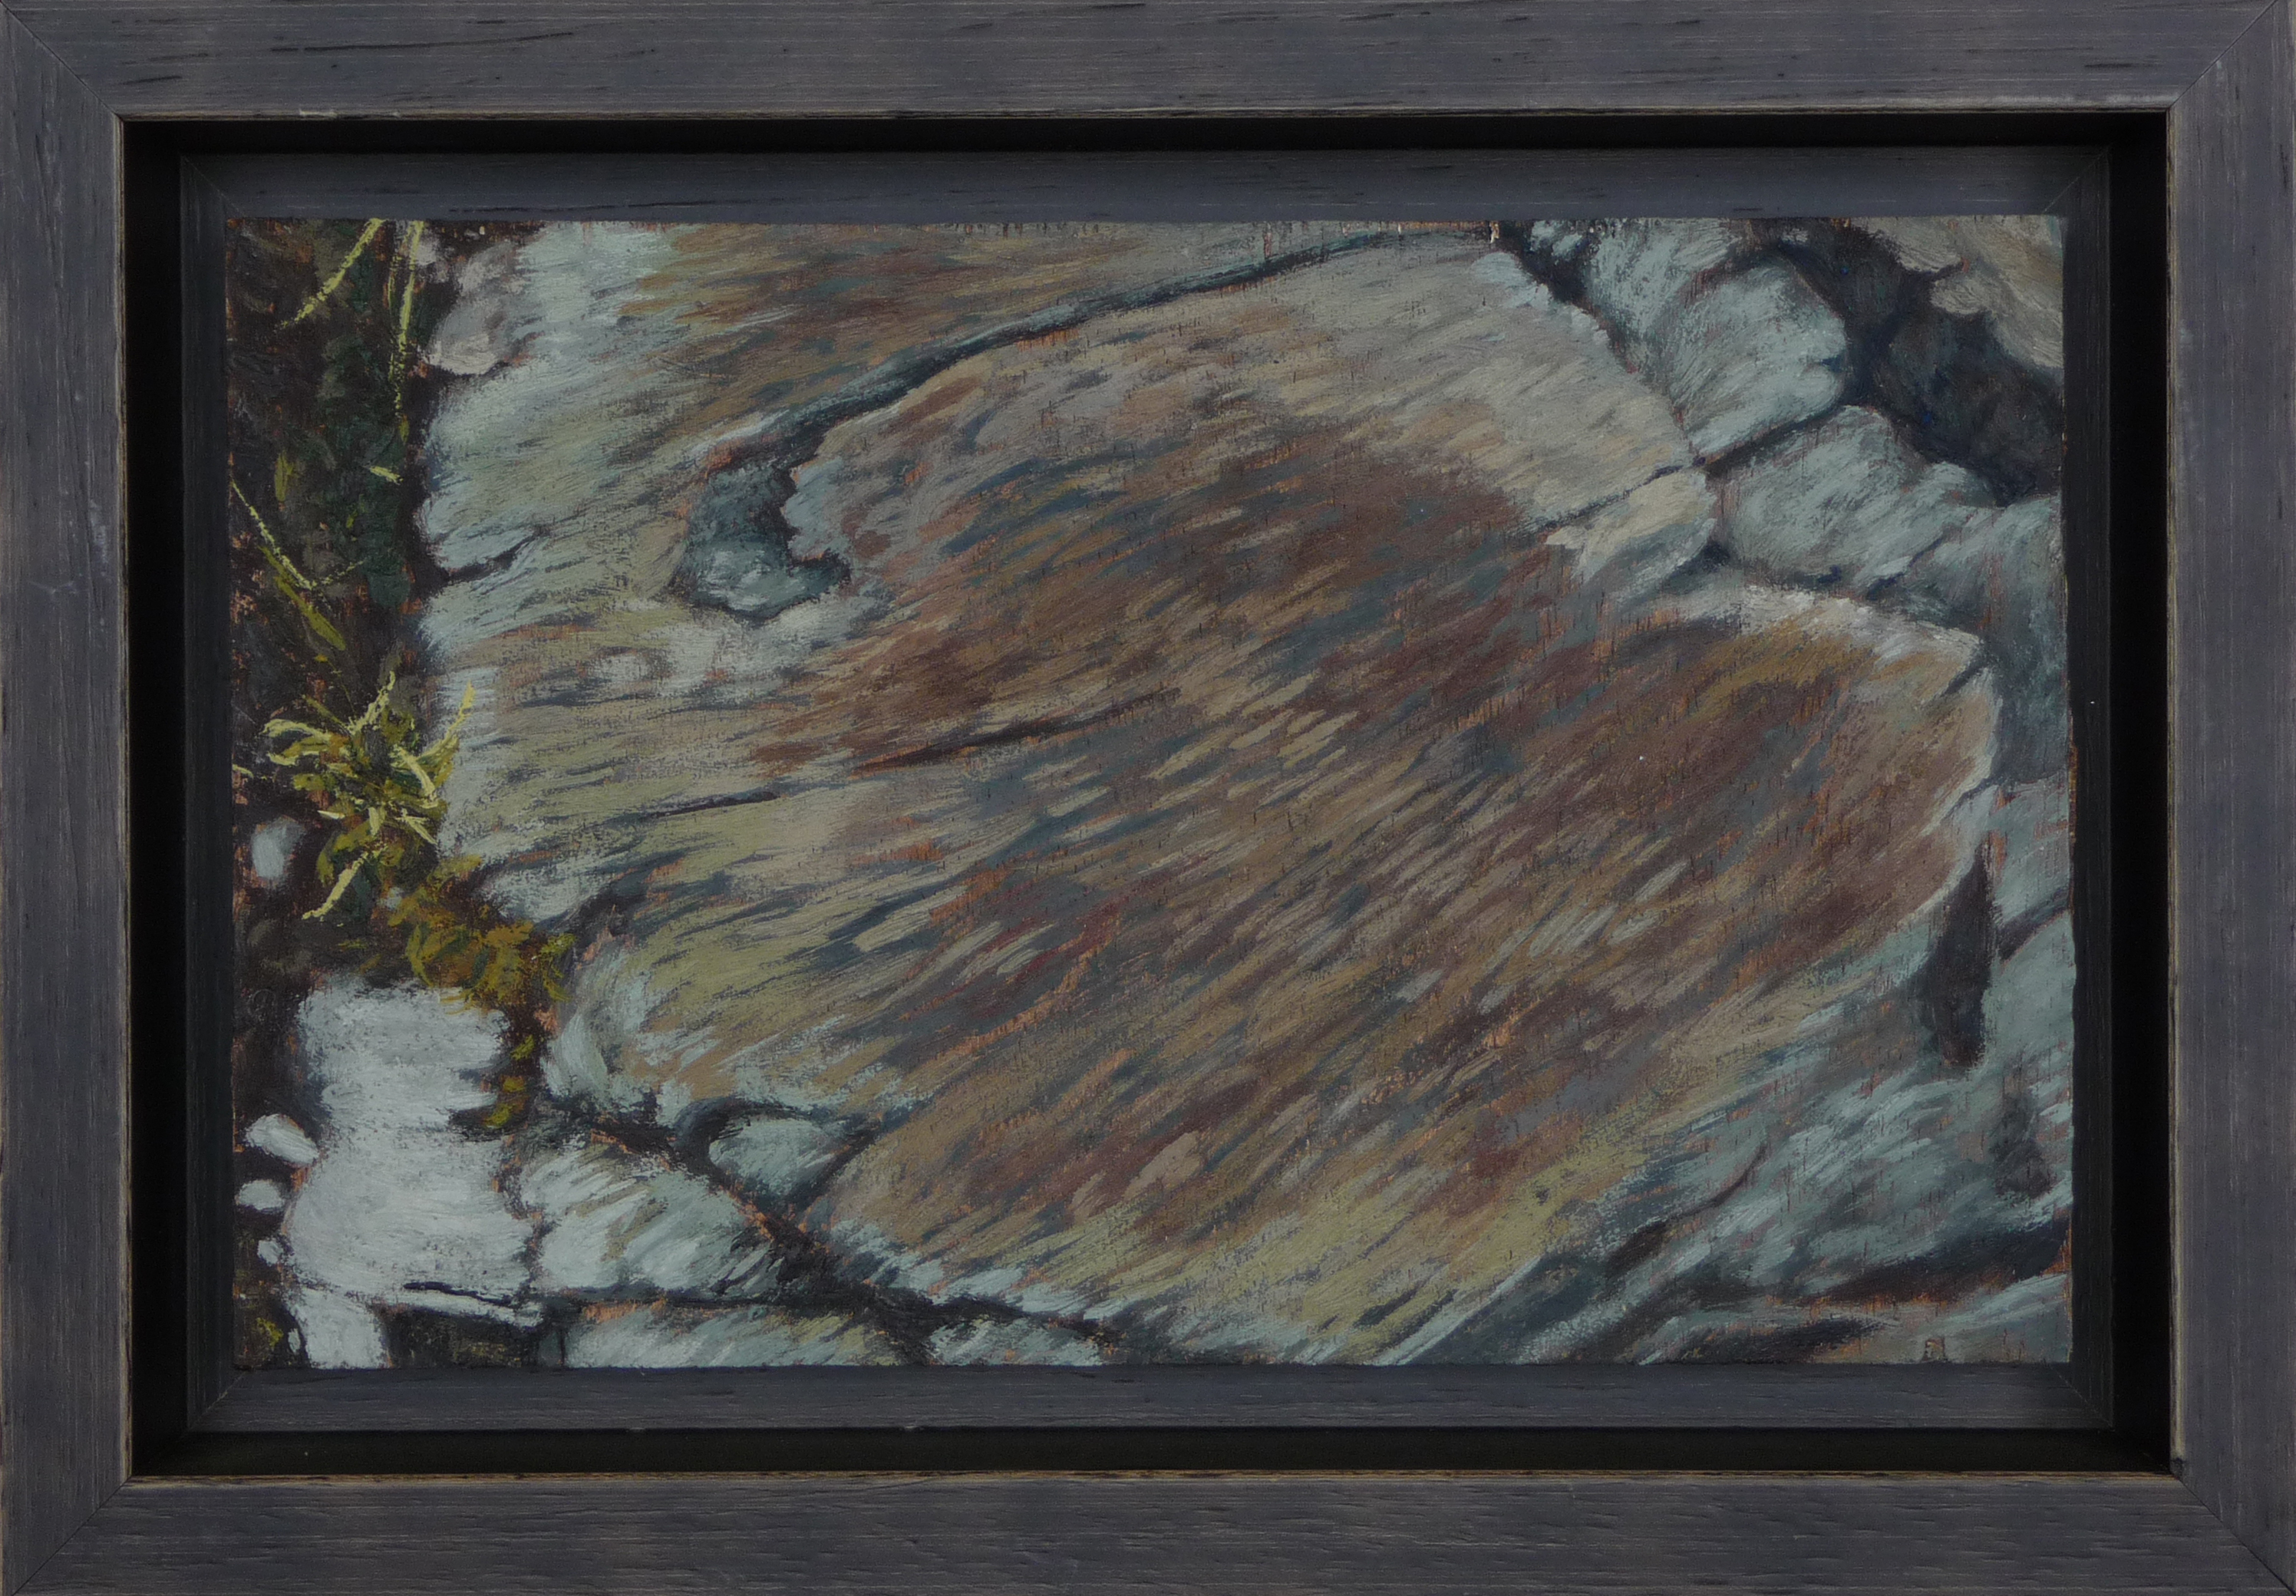 <p><strong>Stone            325 Euro</strong><br />Encaustic on wood, 22,5 x 14 cm<br />[ Frame included - 19 x 27 cm ]<br /><!-- [if gte mso 9]><xml>